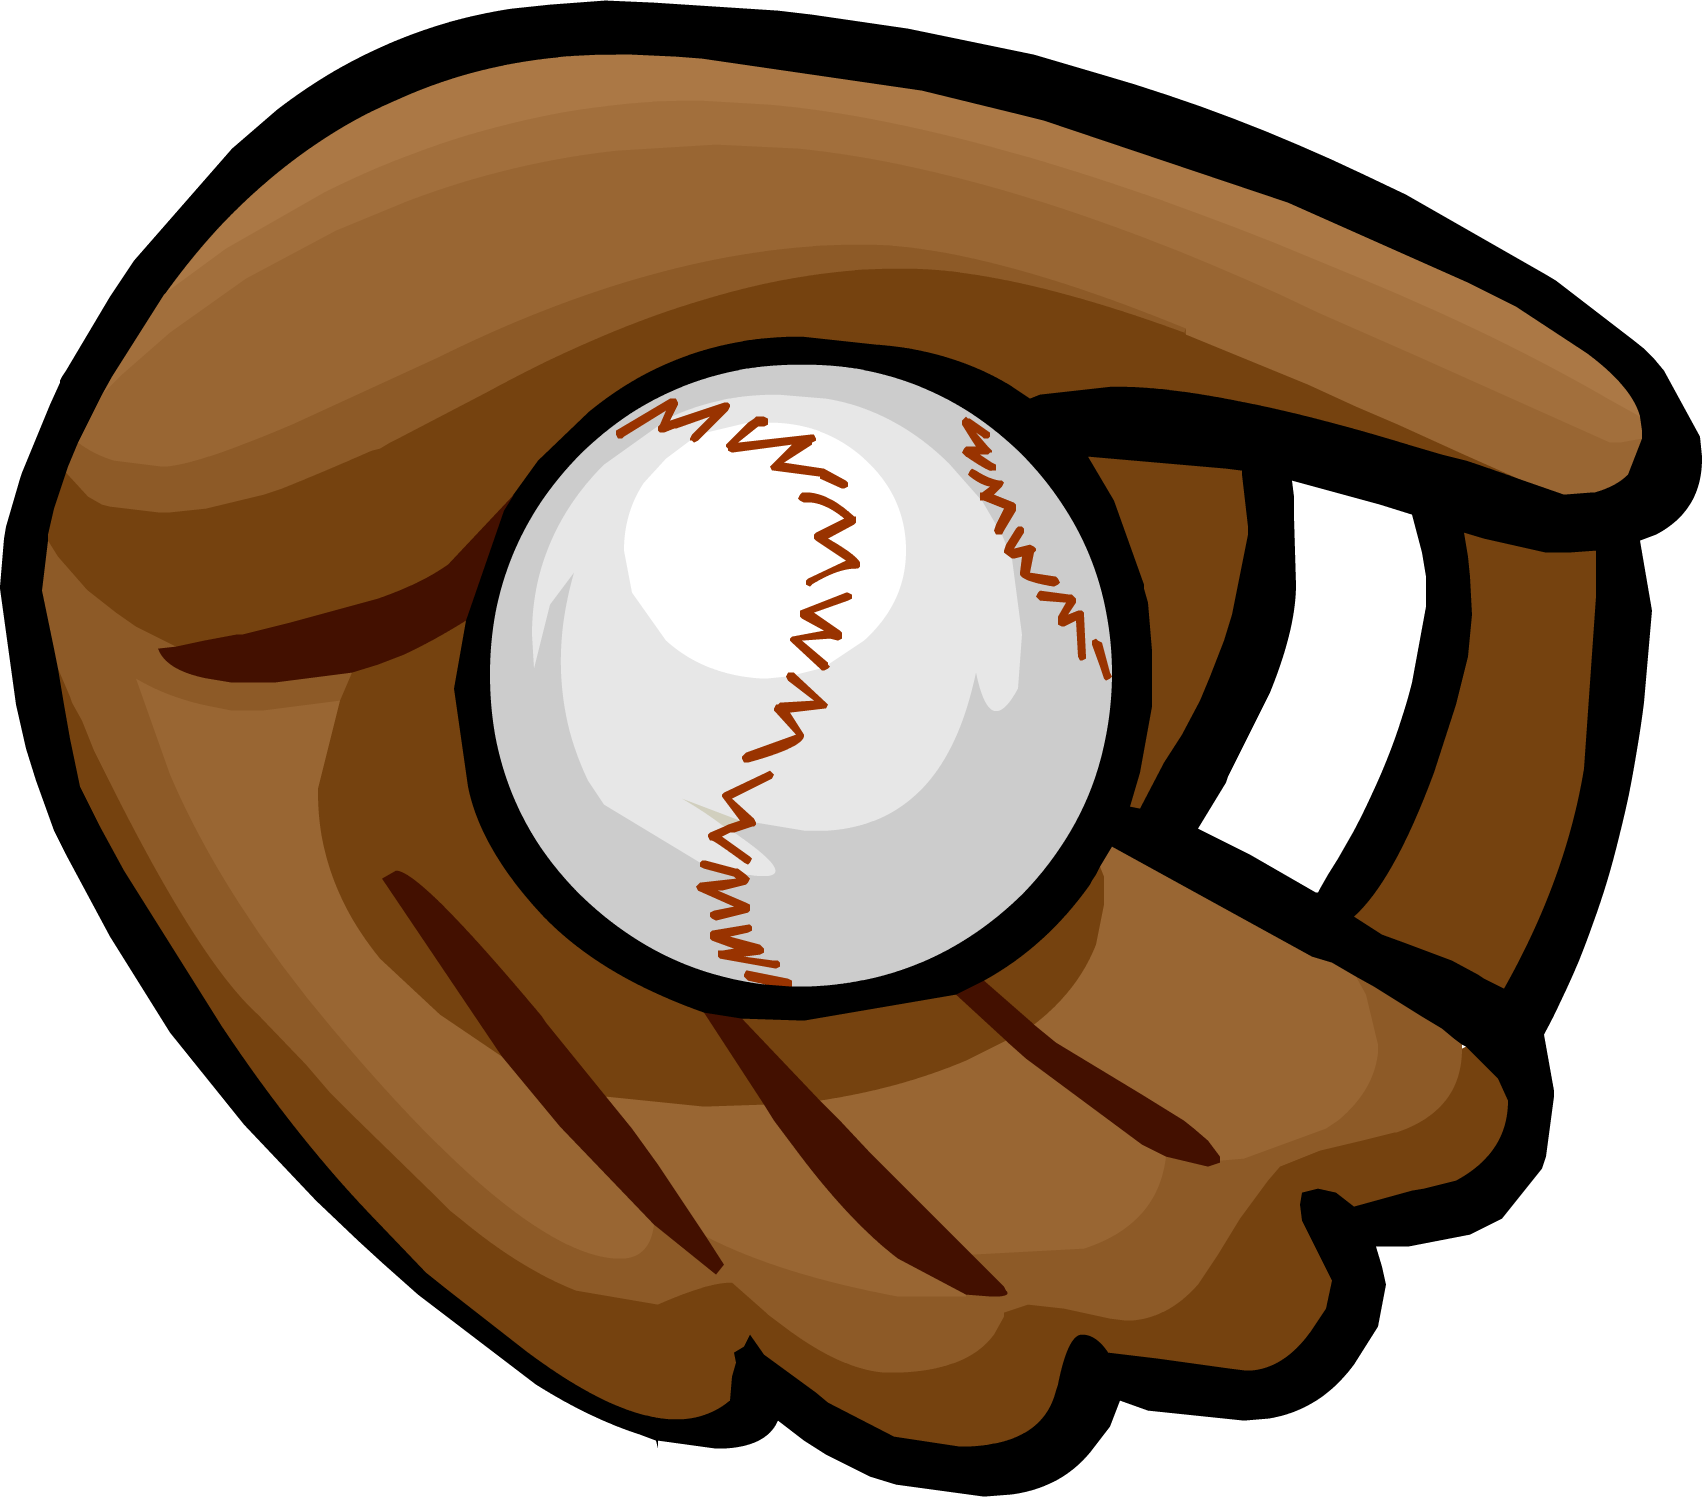 Bat clipart baseball mitt Fandom by Baseball Glove